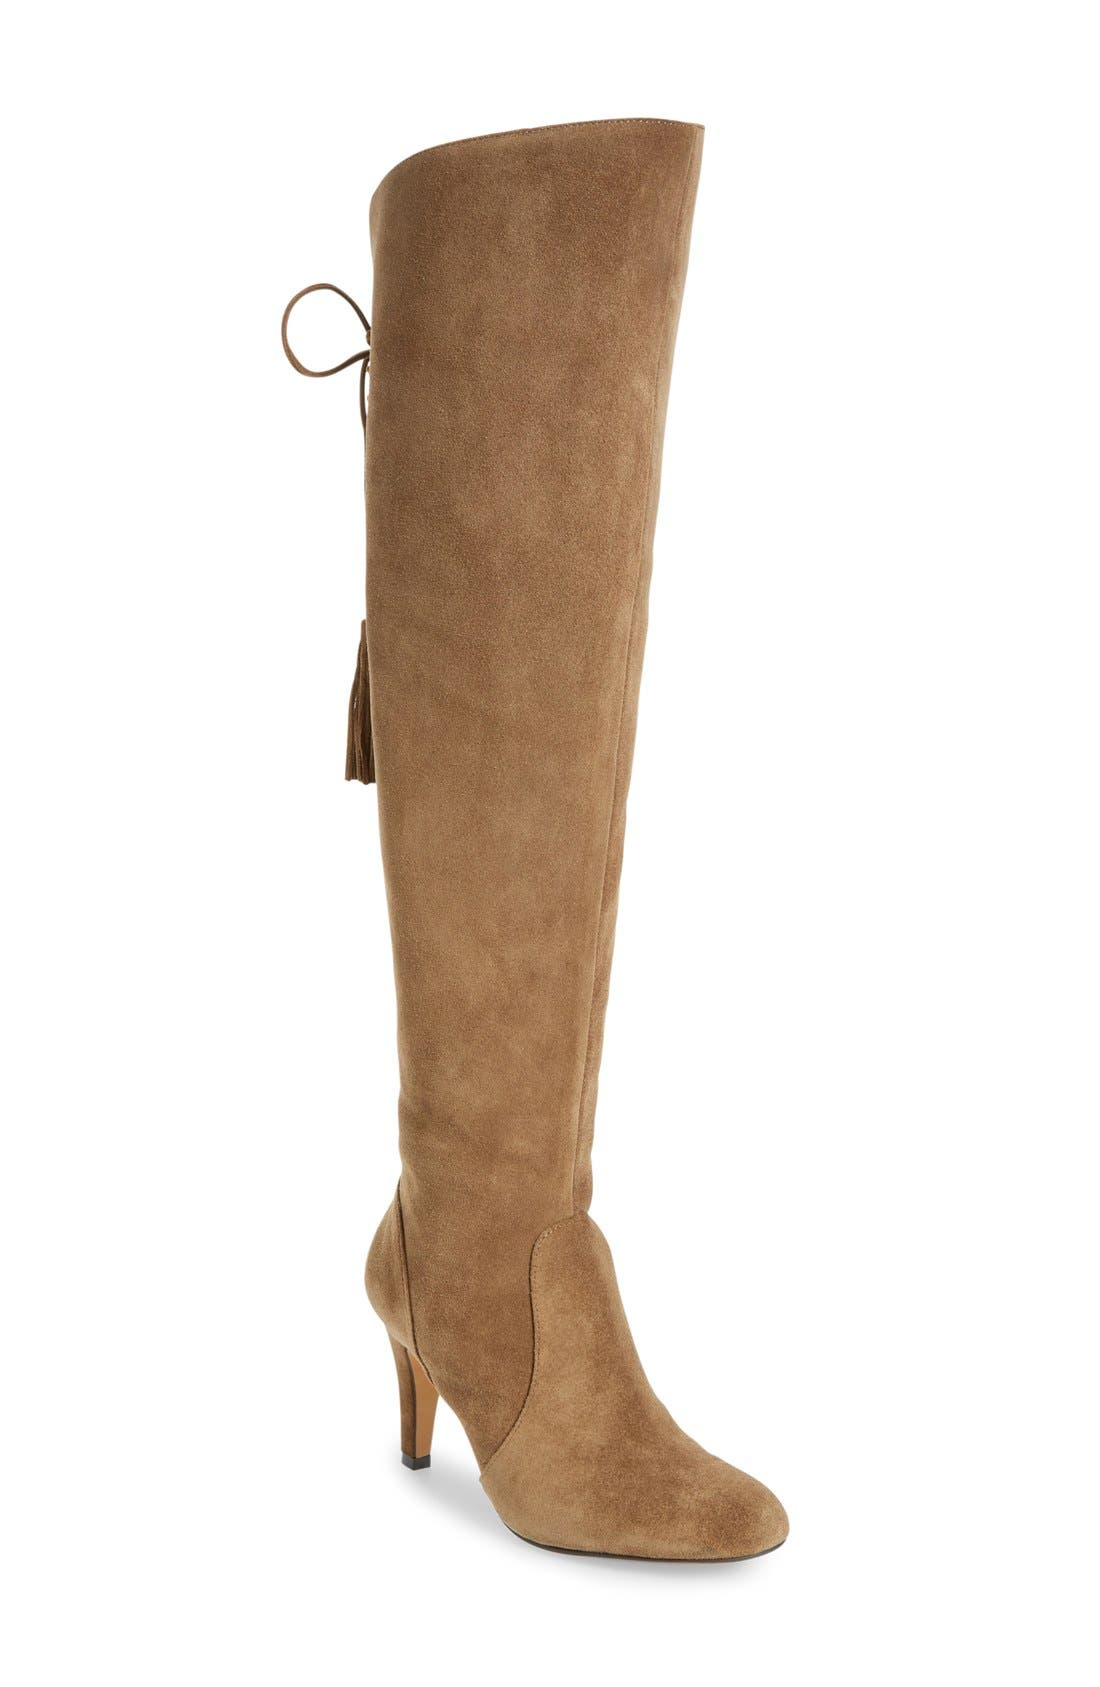 Main Image - Vince Camuto Cherline Over the Knee Boot (Women)